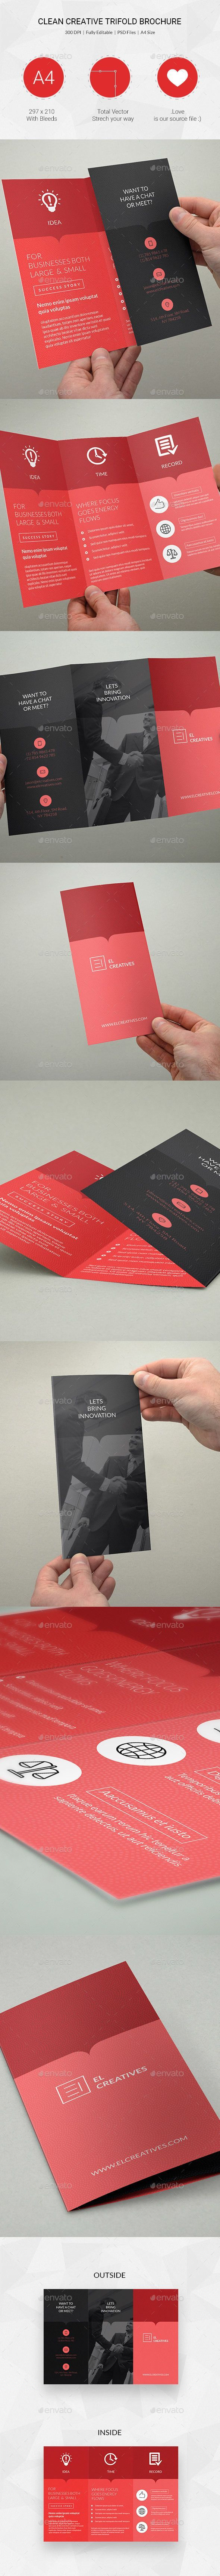 Clean Multipurpose Trifold Brochure PSD Template #design Download: http://graphicriver.net/item/clean-multipurpose-trifold-brochure-18/13081120?ref=ksioks